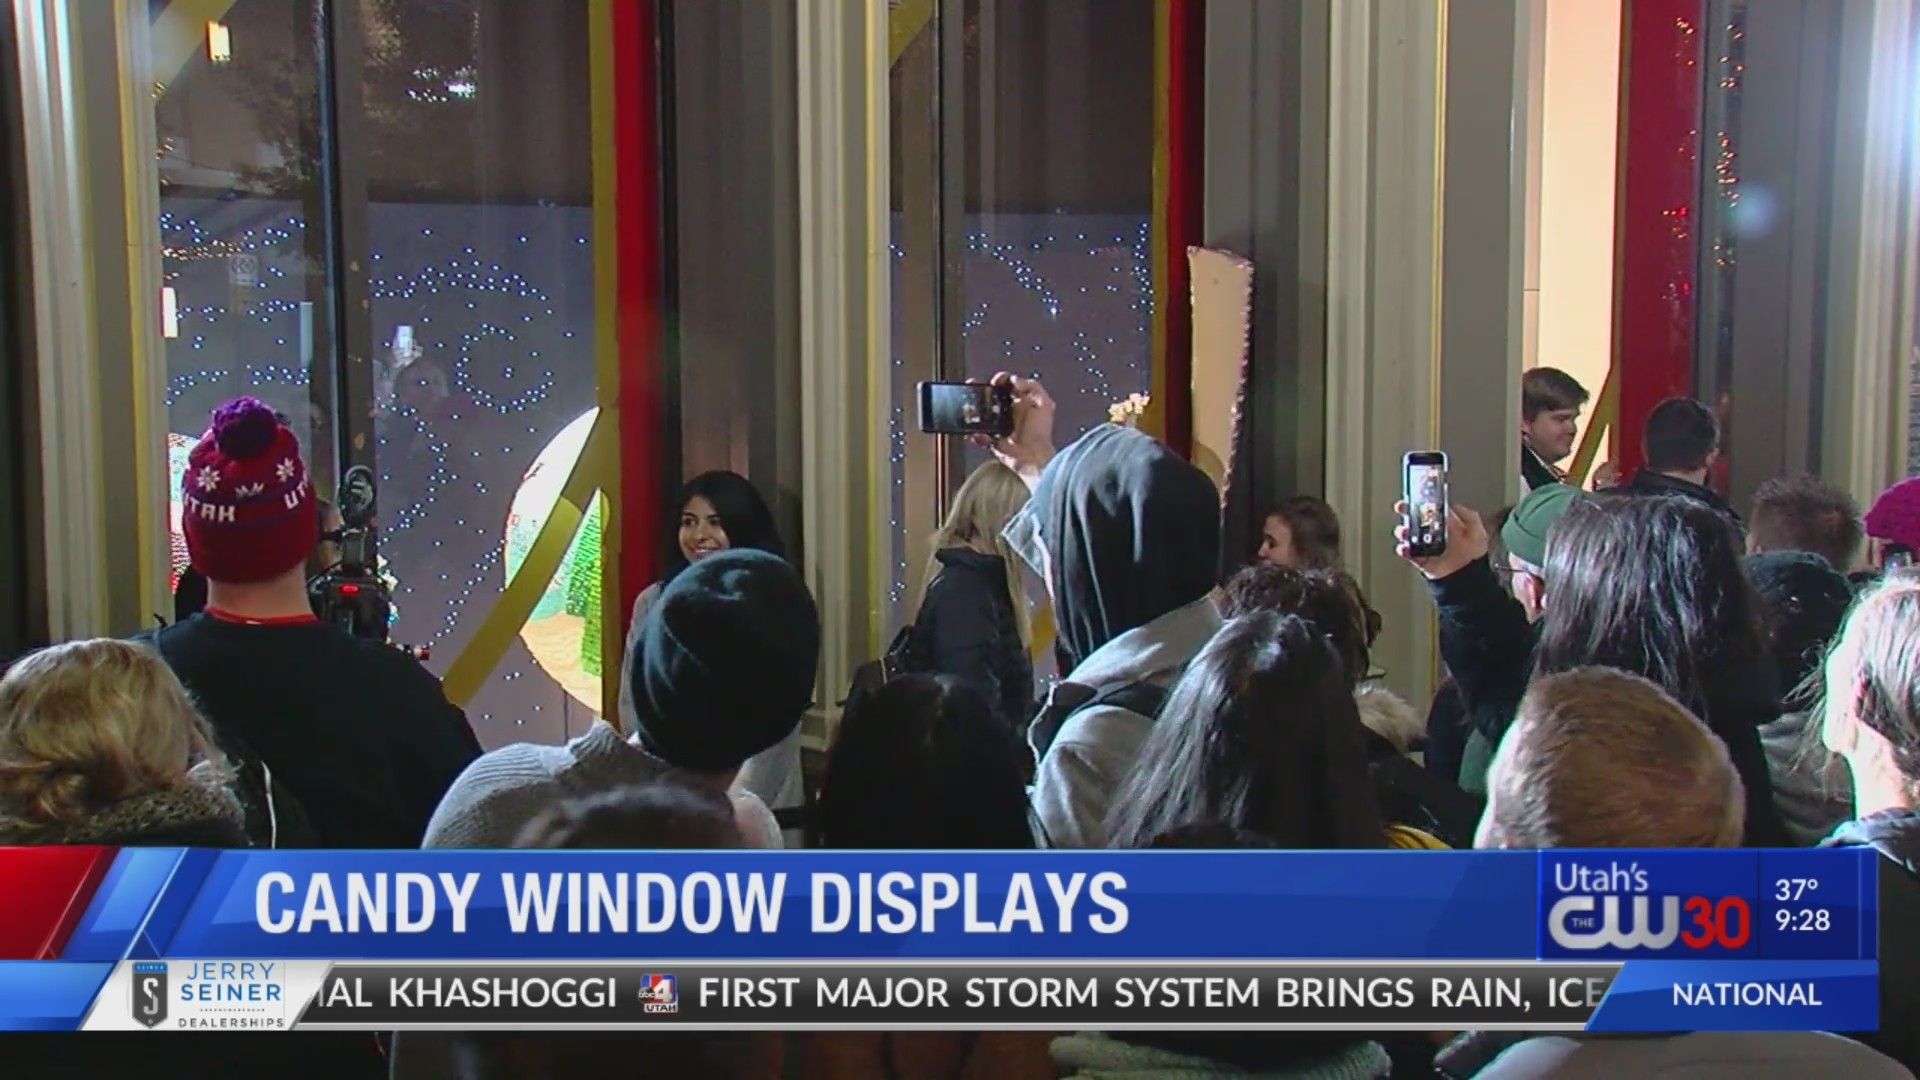 Candy_windows_unveiled_in_Salt_Lake_City_0_20181116050121